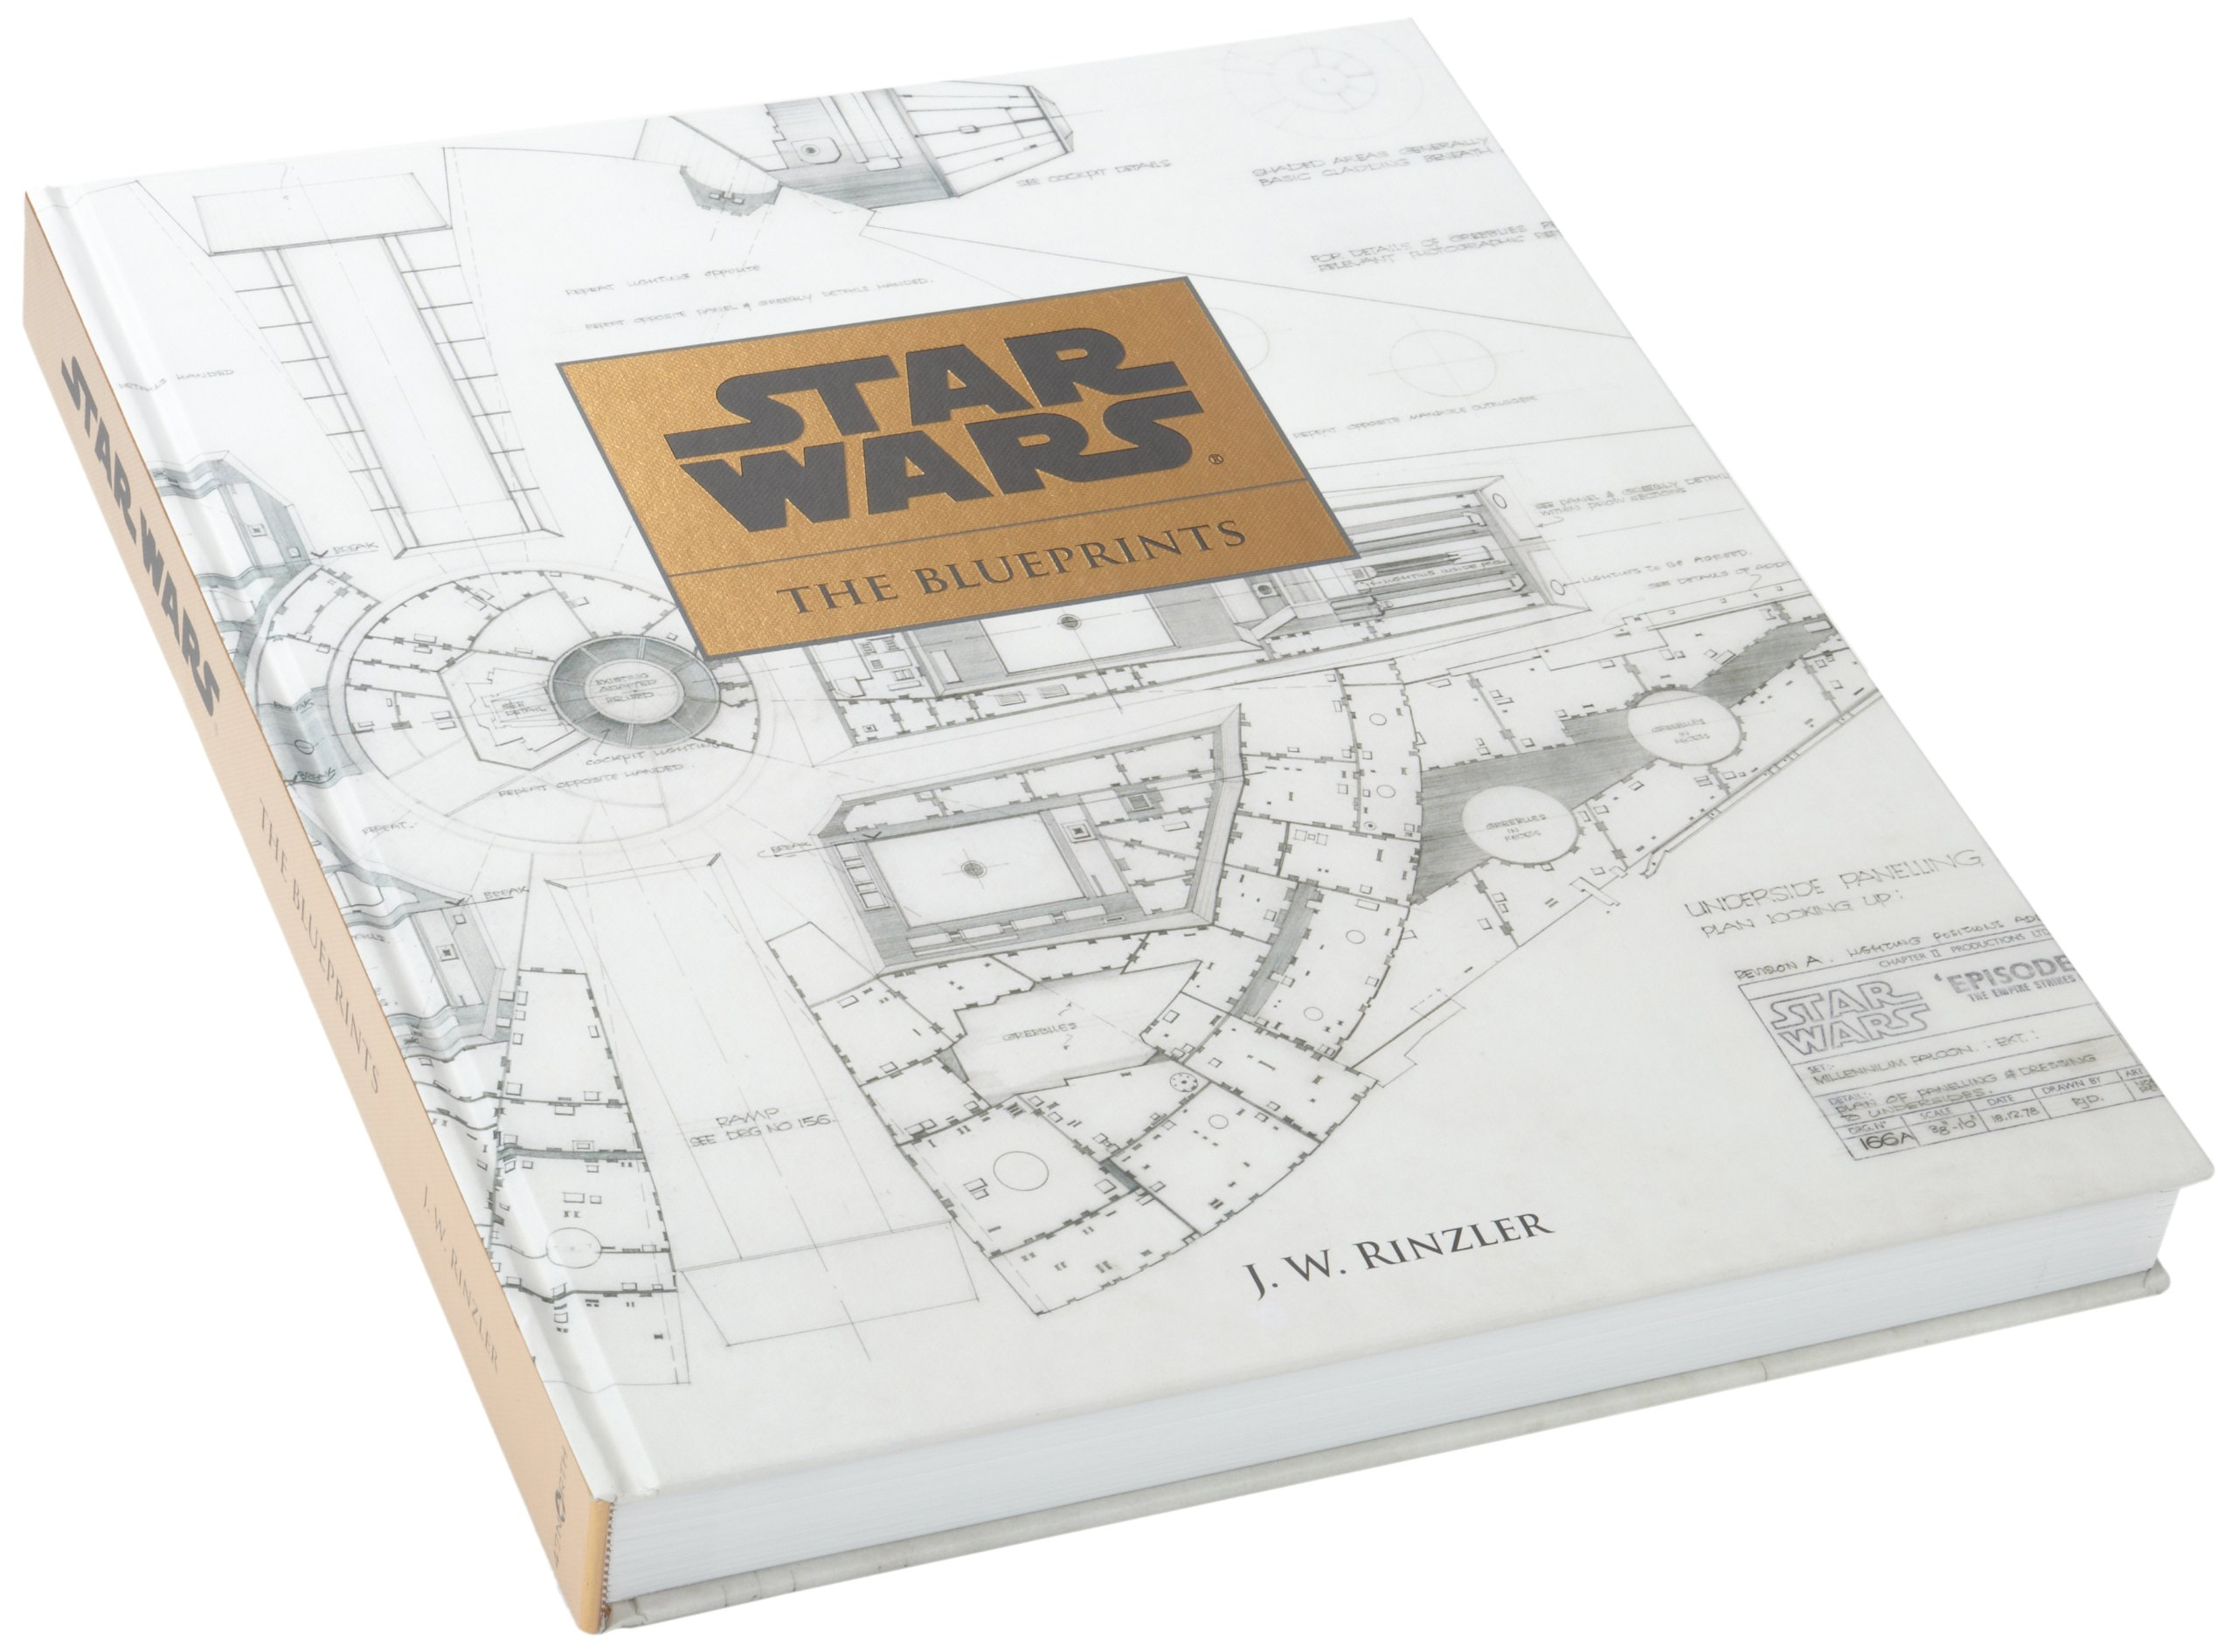 Star Wars The Blueprints J W Rinzler 9781611097962 Amazoncom